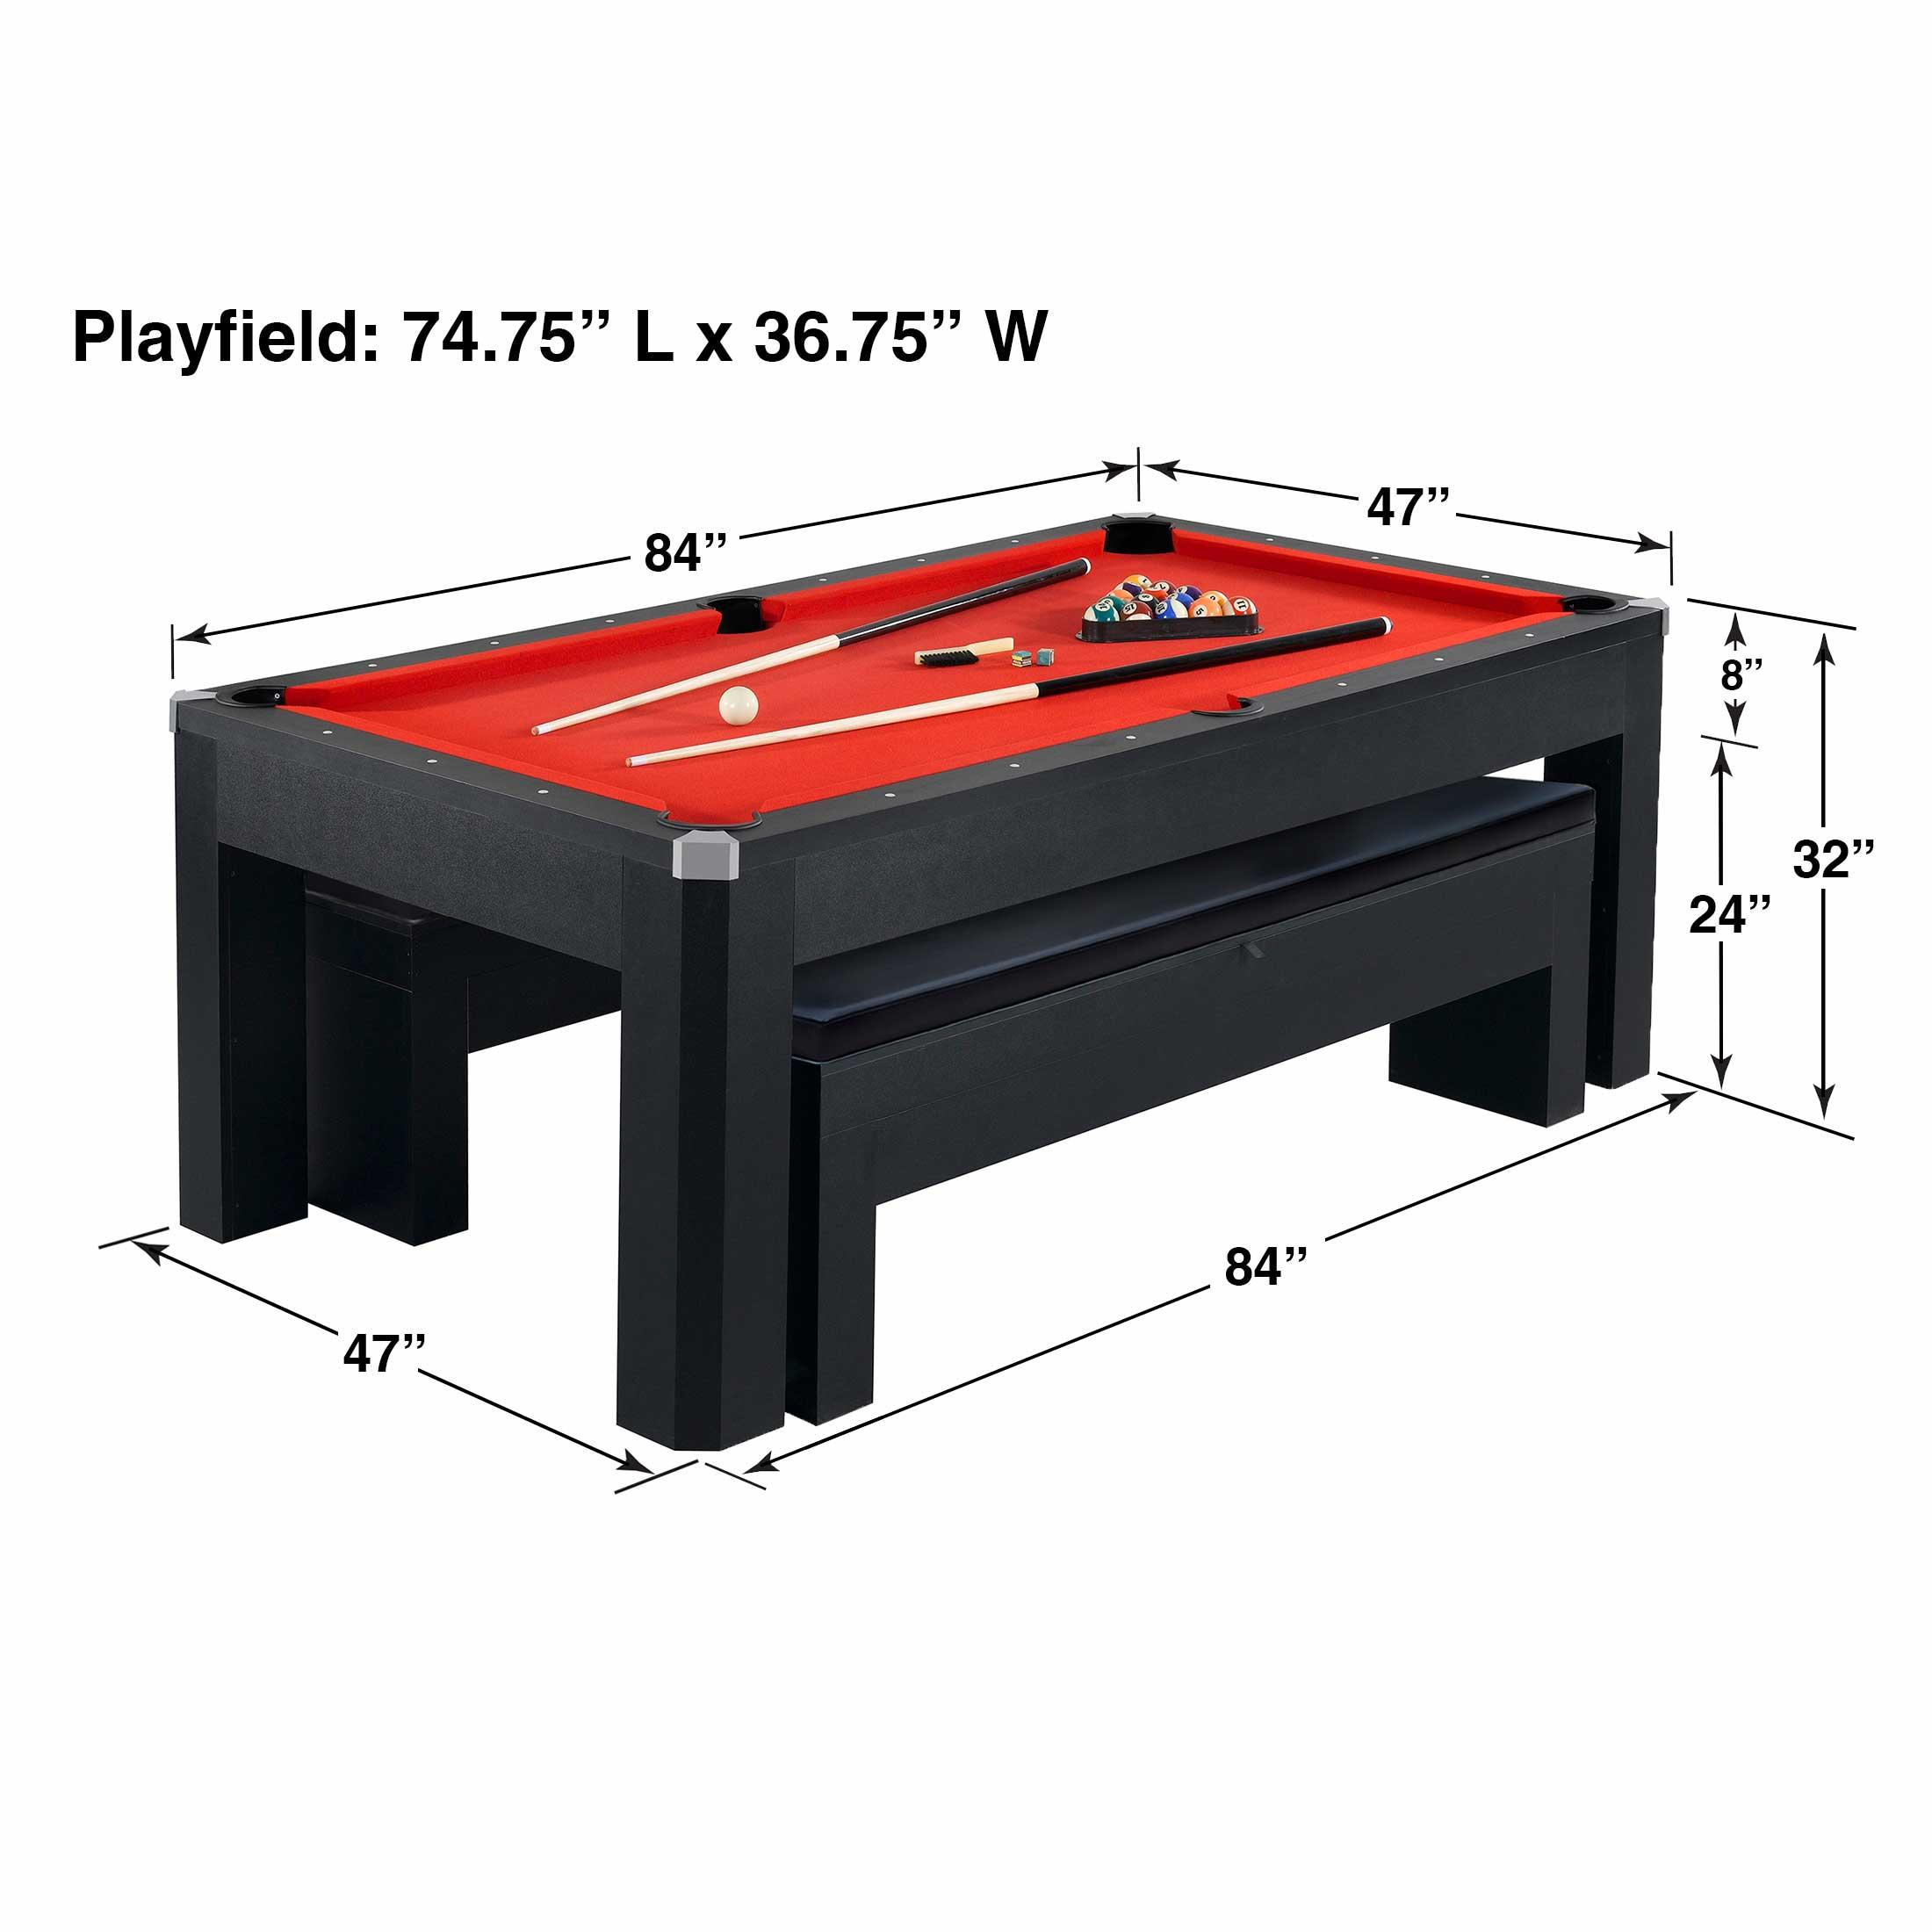 Park avenue 7 foot pool table tennis combination with dining top two storage benches free - Pool table table tennis ...